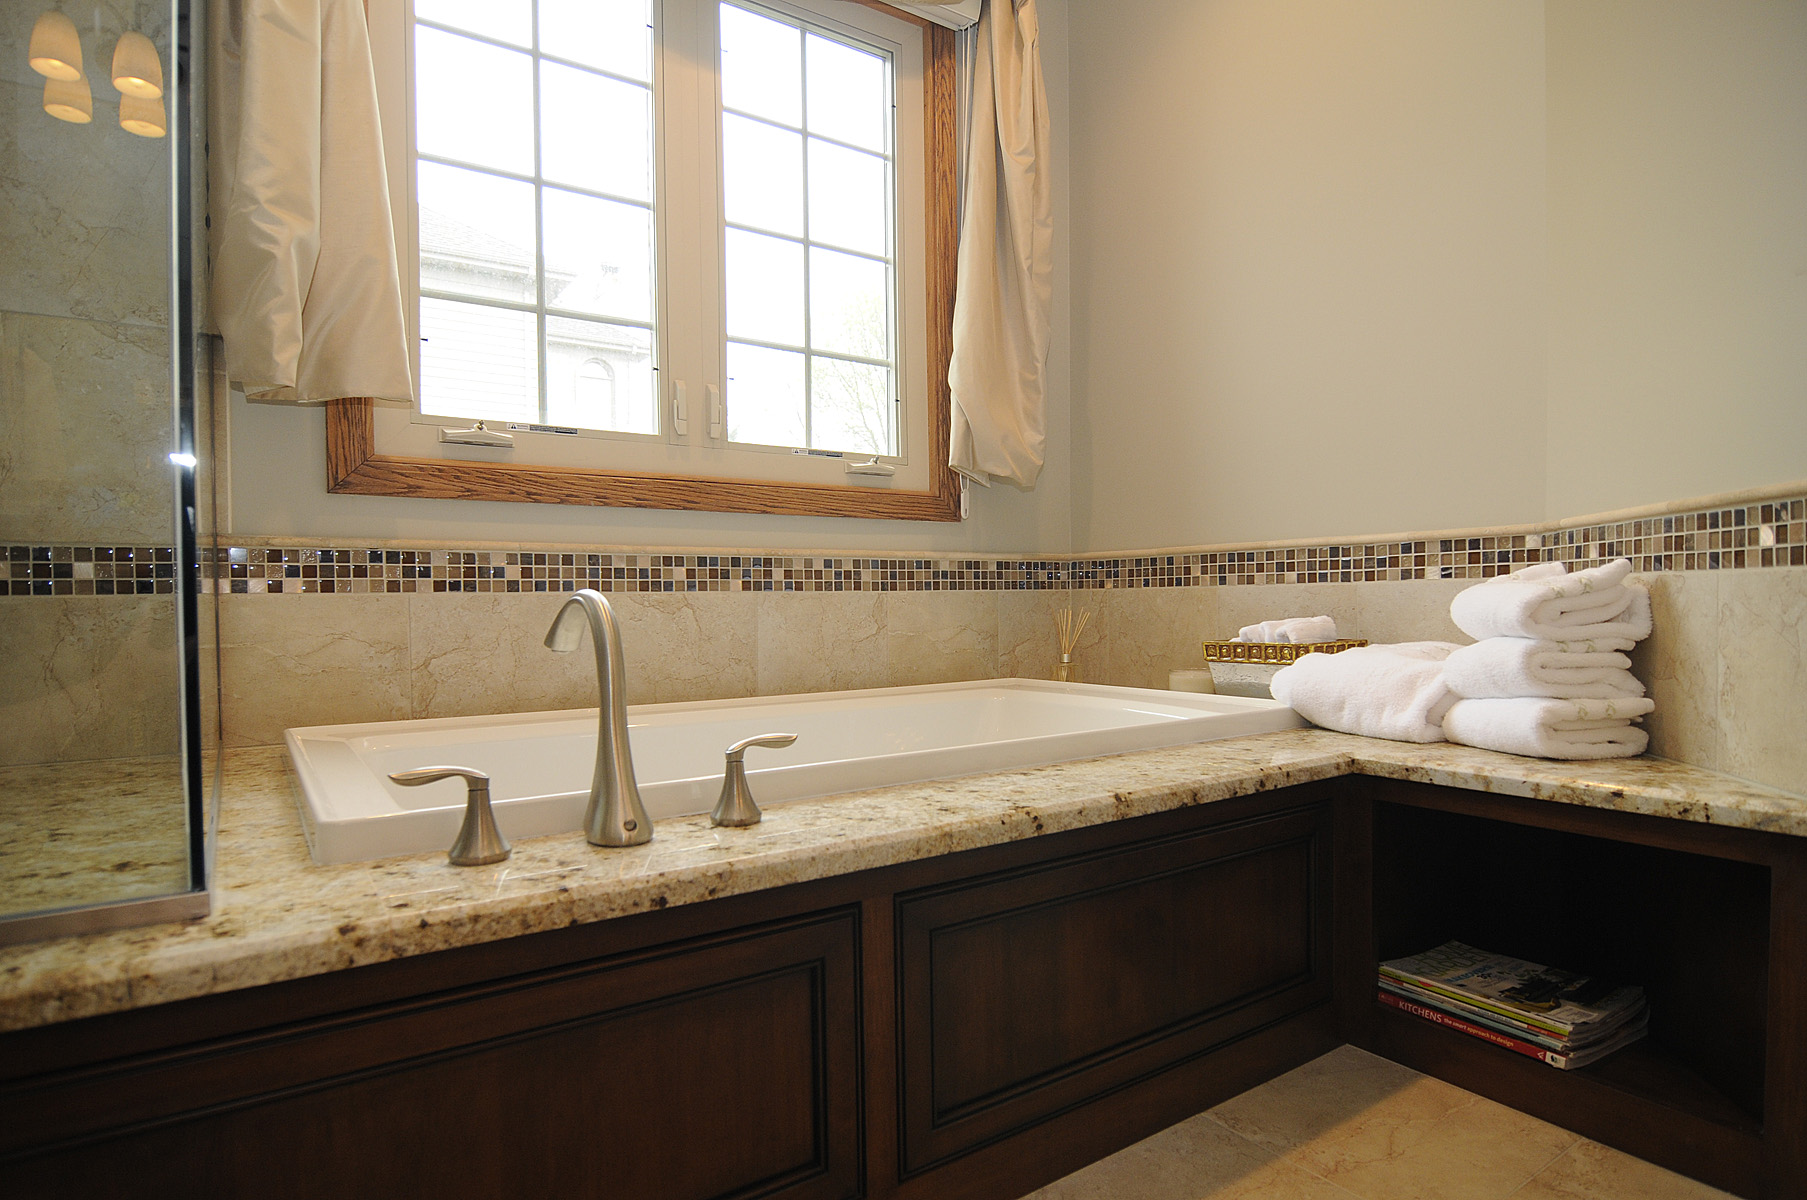 Chicago bathroom remodeling chicago bathroom remodel Chicago bathroom remodeling